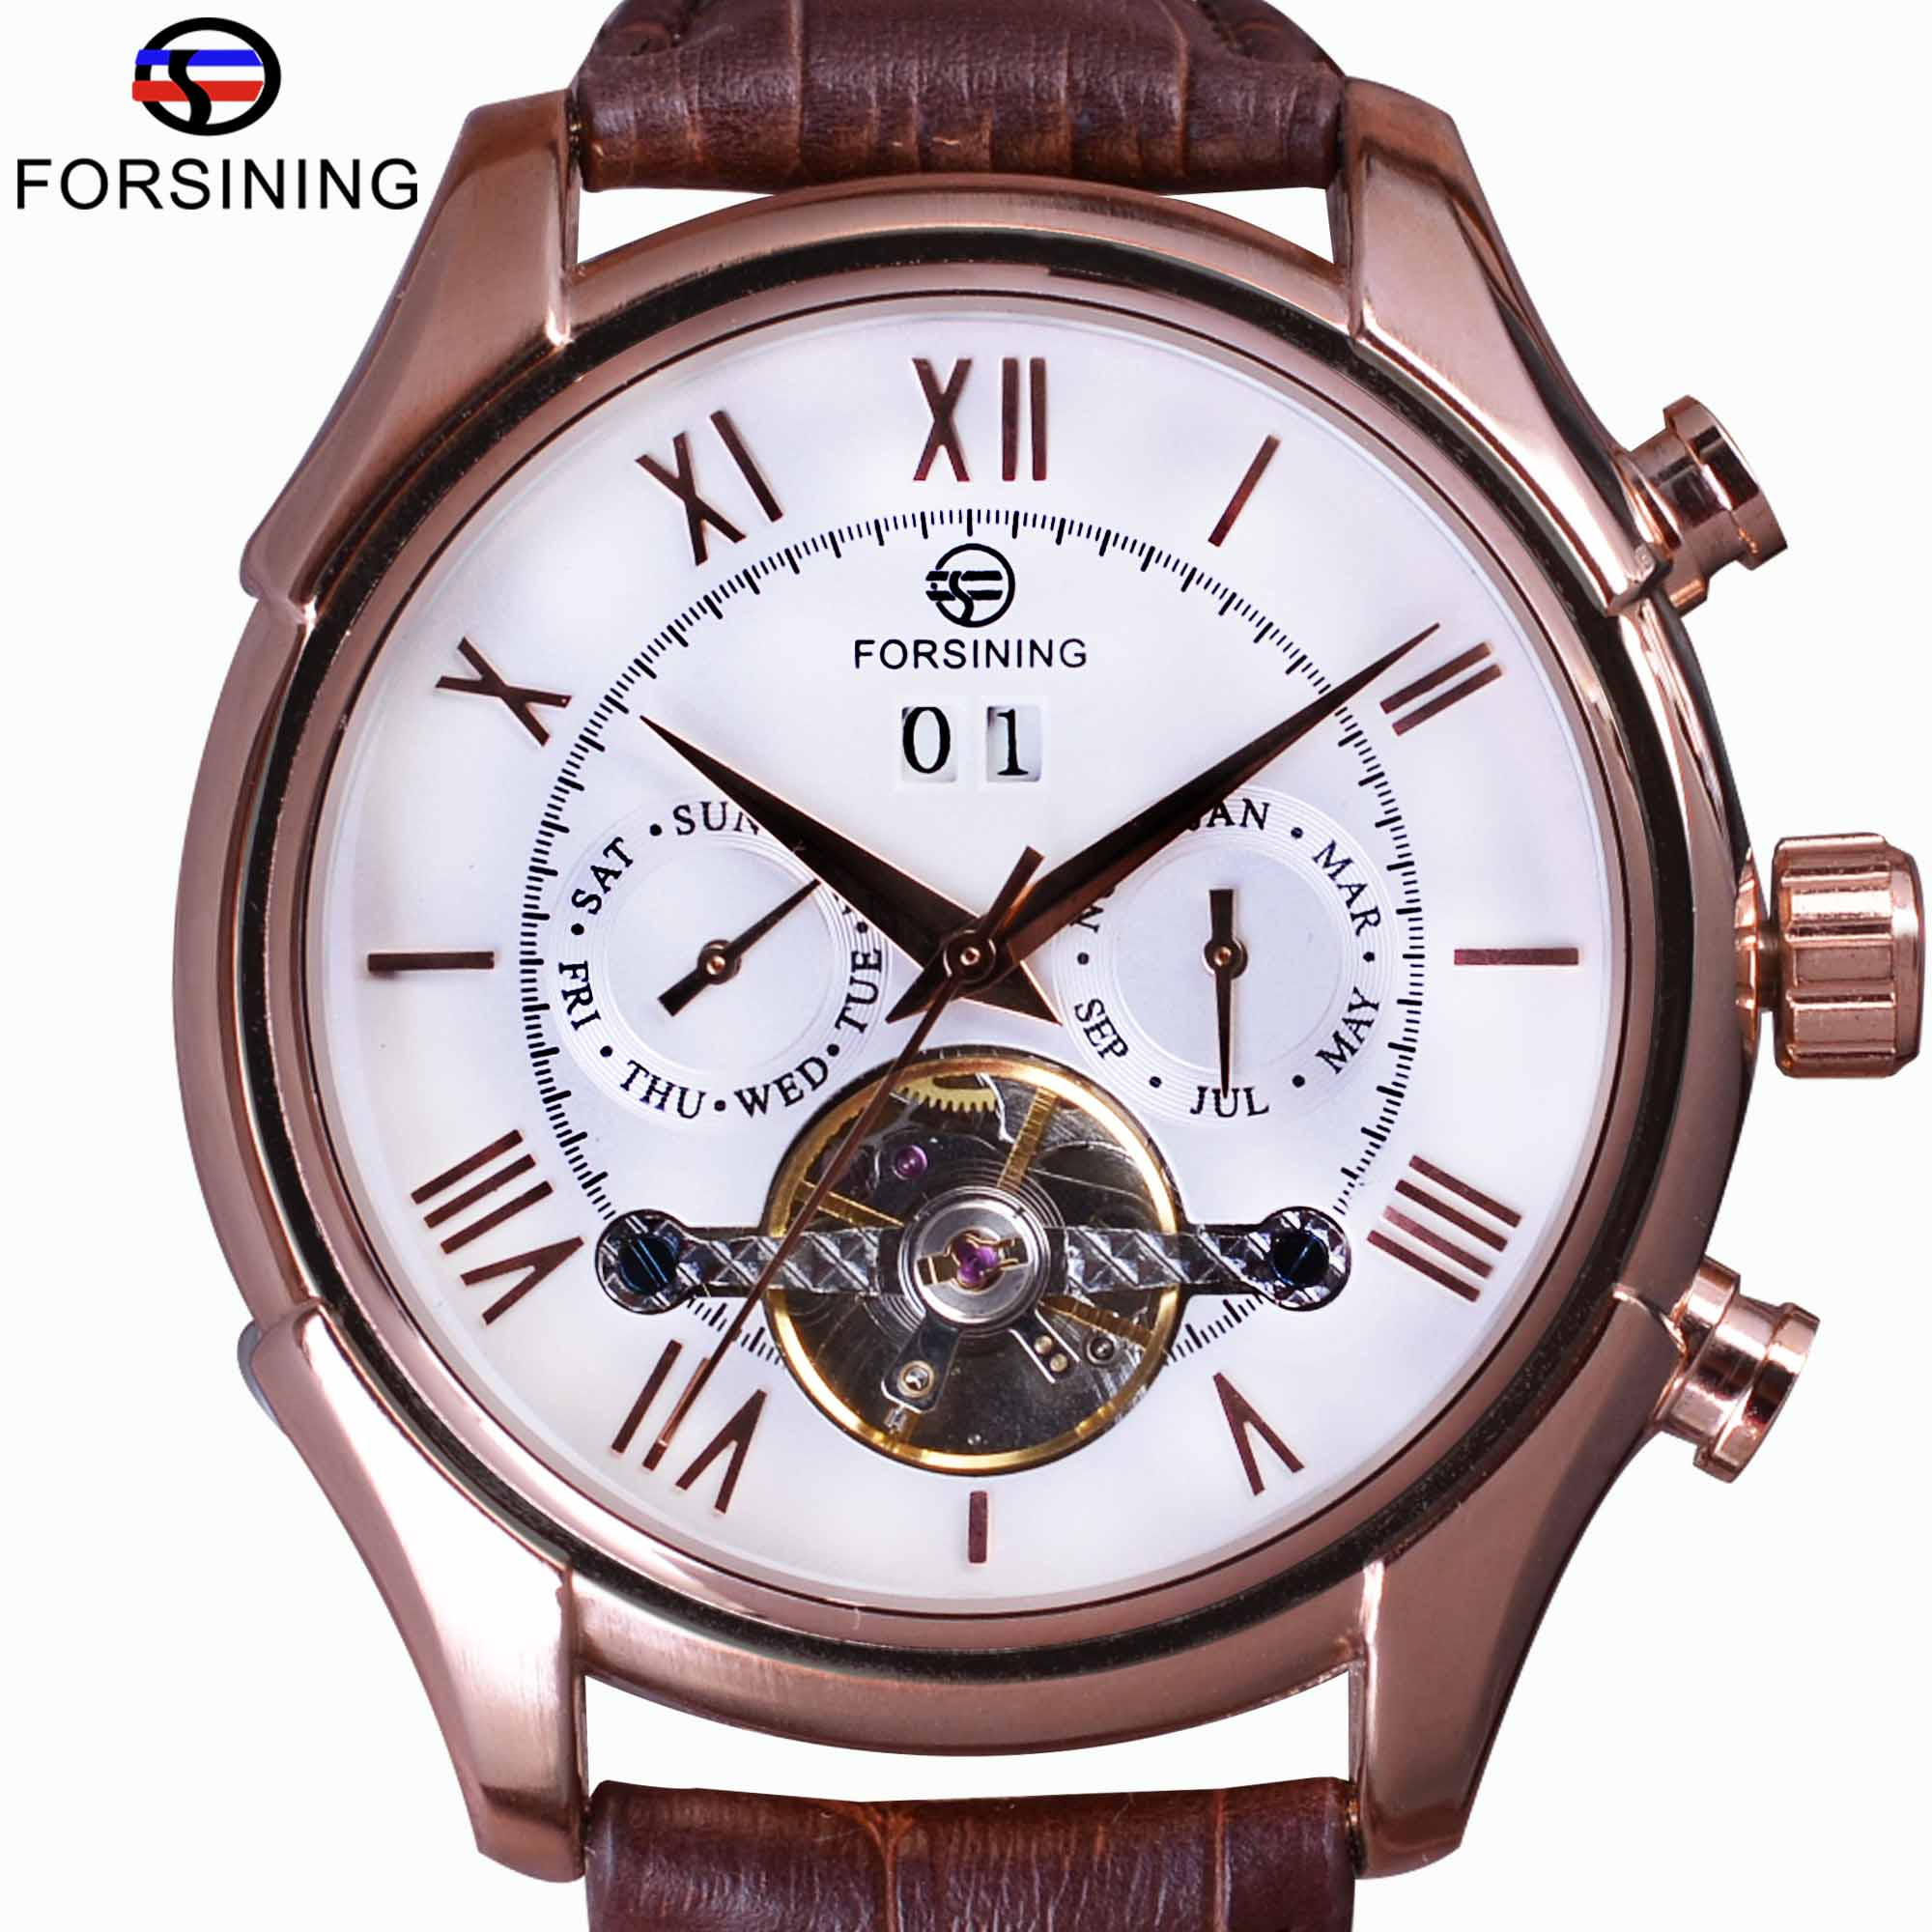 Forsining Royal Classic Rose Gold Case Brown Leather Strap Calendar Tourbillion Men Automatic Watch Top Brand Luxury Wrist Watch forsining navigator series brown leather tourbillion watch blue dial calendar display men automatic watch top brand luxury clock